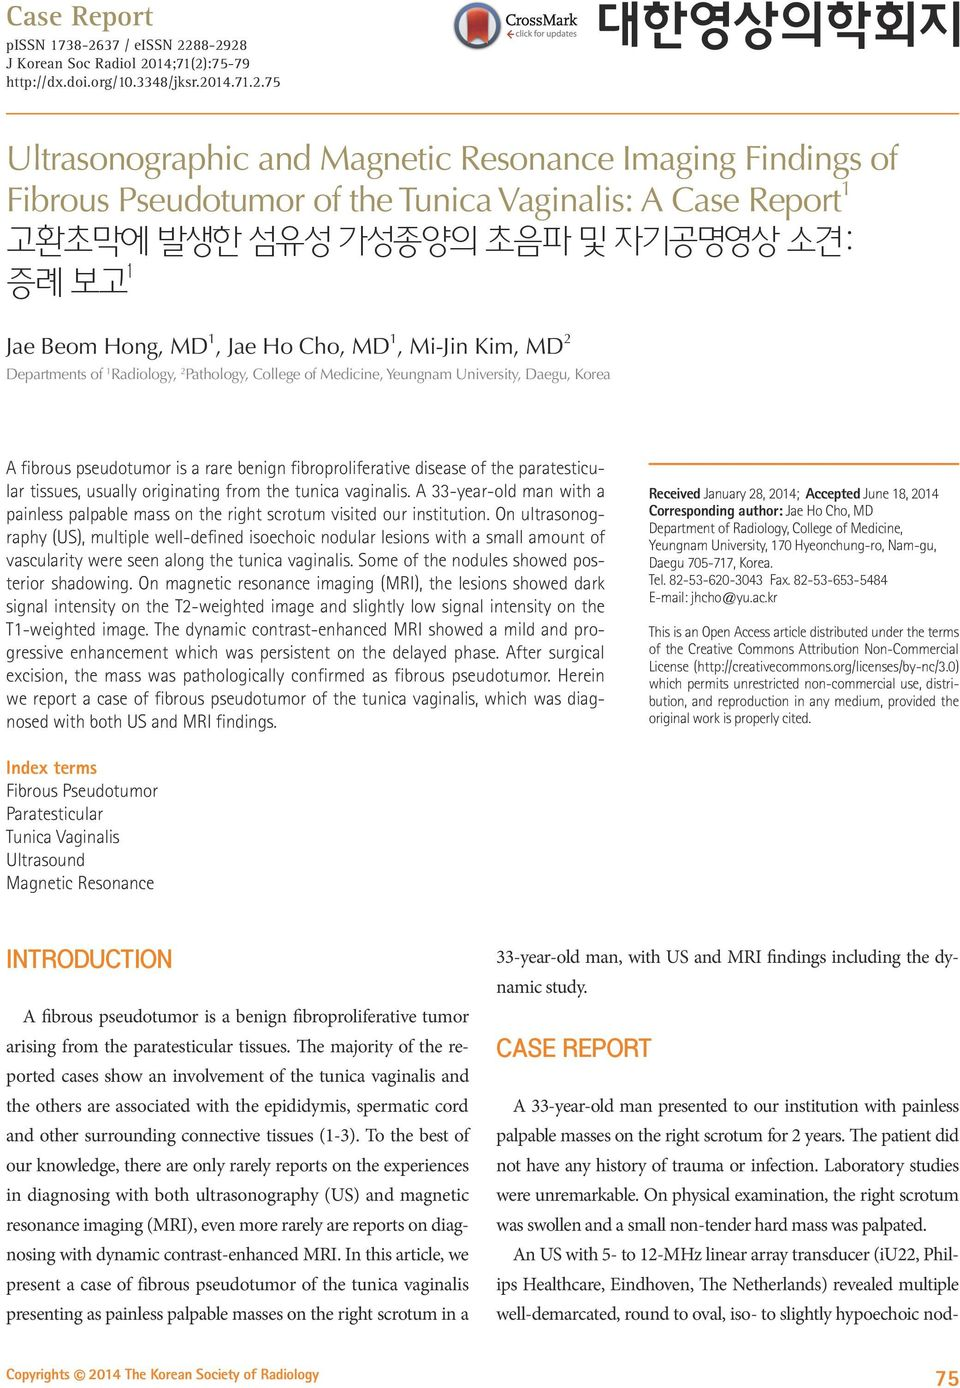 88-2928 J Korean Soc Radiol 2014;71(2):75-79 http://dx.doi.org/10.3348/jksr.2014.71.2.75 Ultrasonographic and Magnetic Resonance Imaging Findings of Fibrous Pseudotumor of the Tunica Vaginalis: A